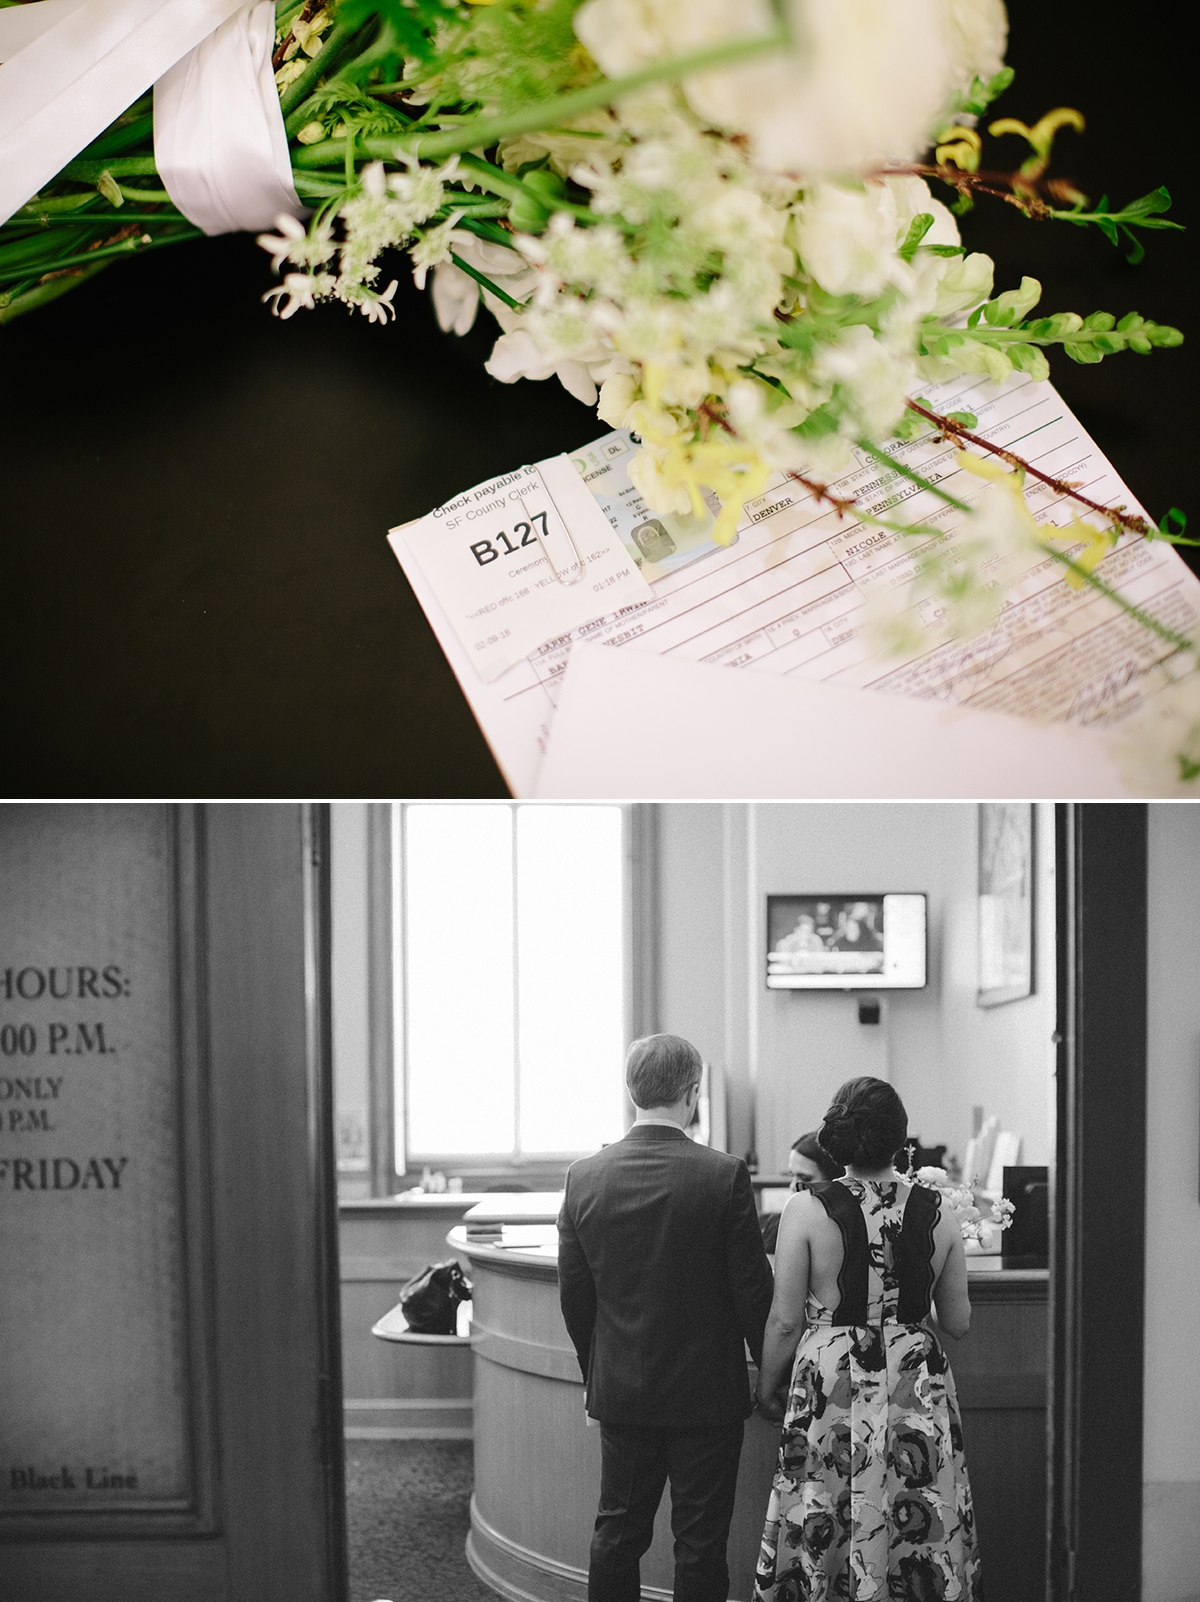 Marriage license at San Francisco's City Hall, County Clerk Office.